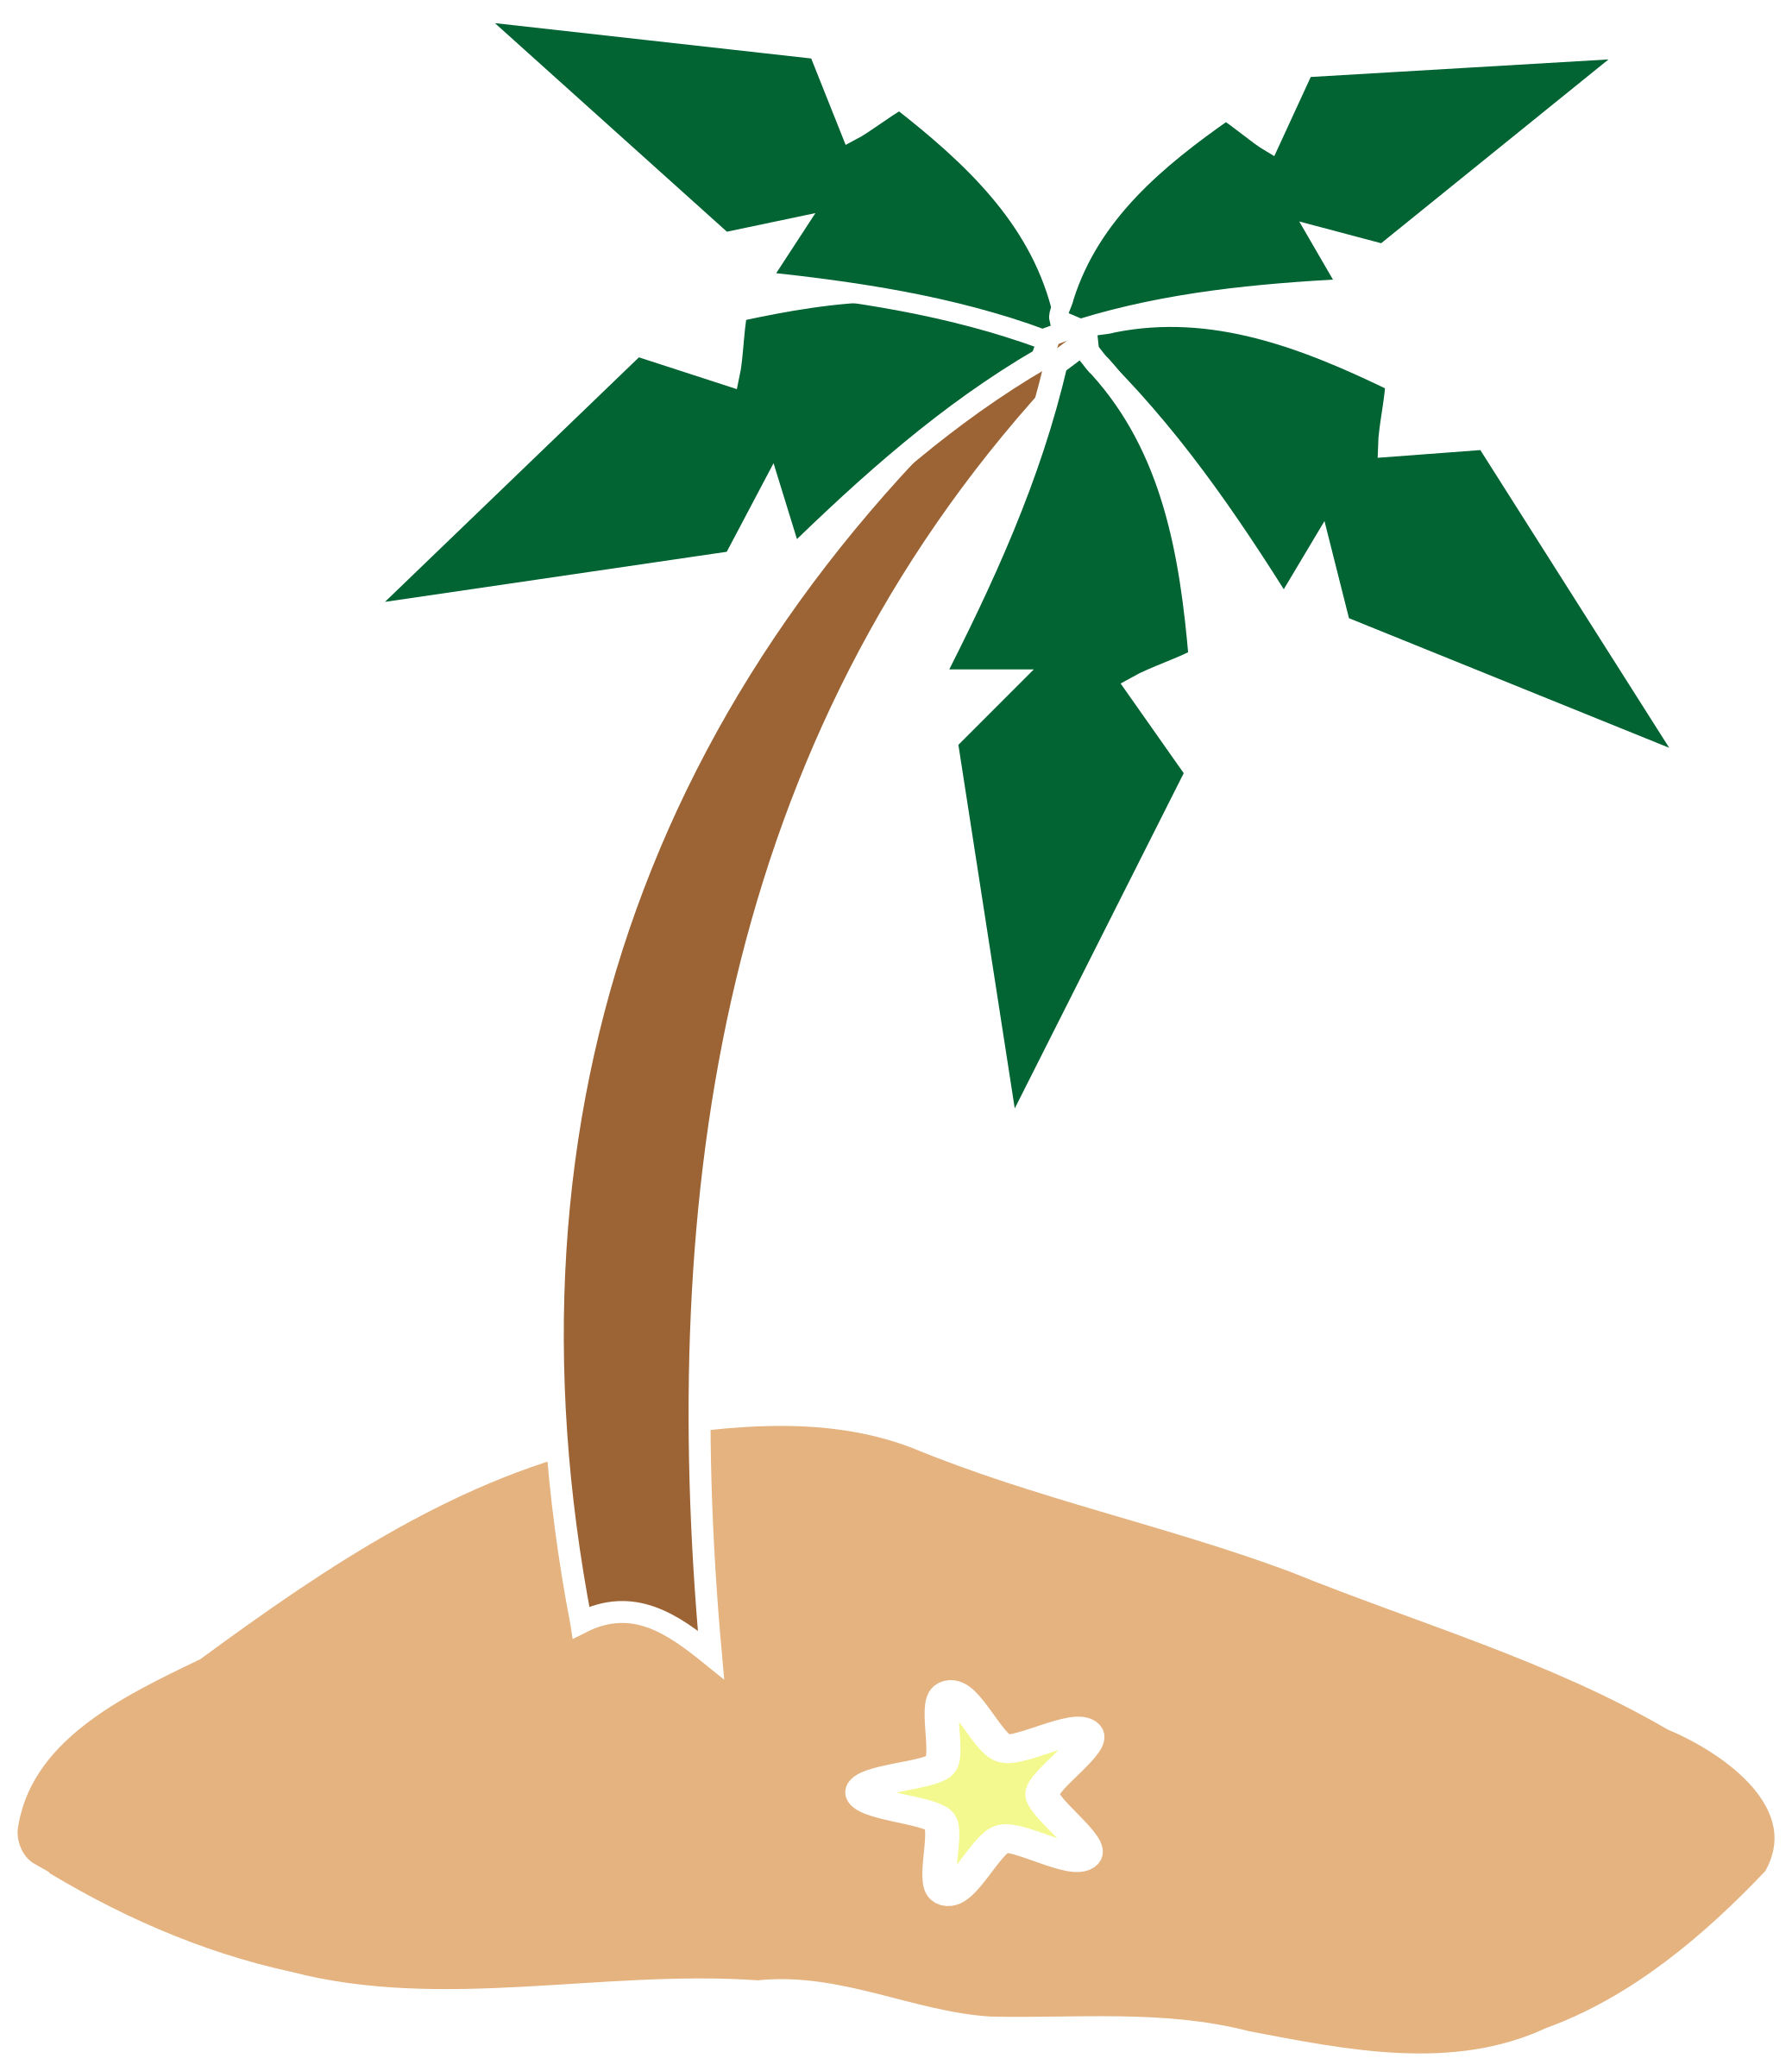 Island big image png. Palm clipart simple